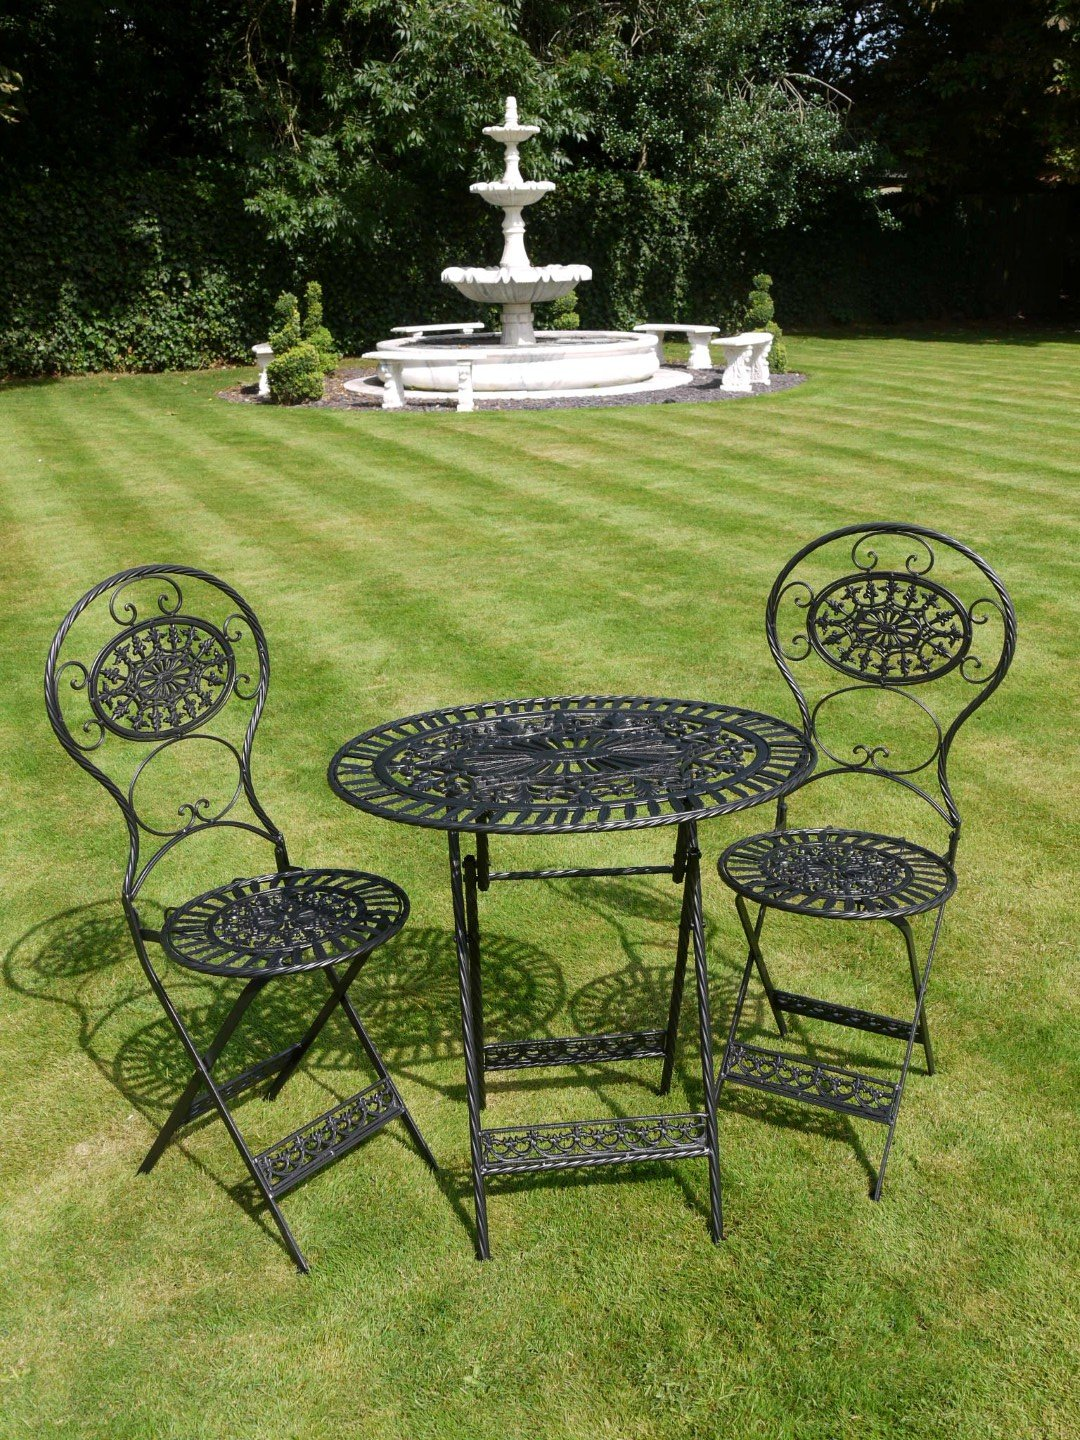 black wrought iron 3 piece bistro style garden patio furniture set amazoncouk garden outdoors - Garden Furniture 3 Piece